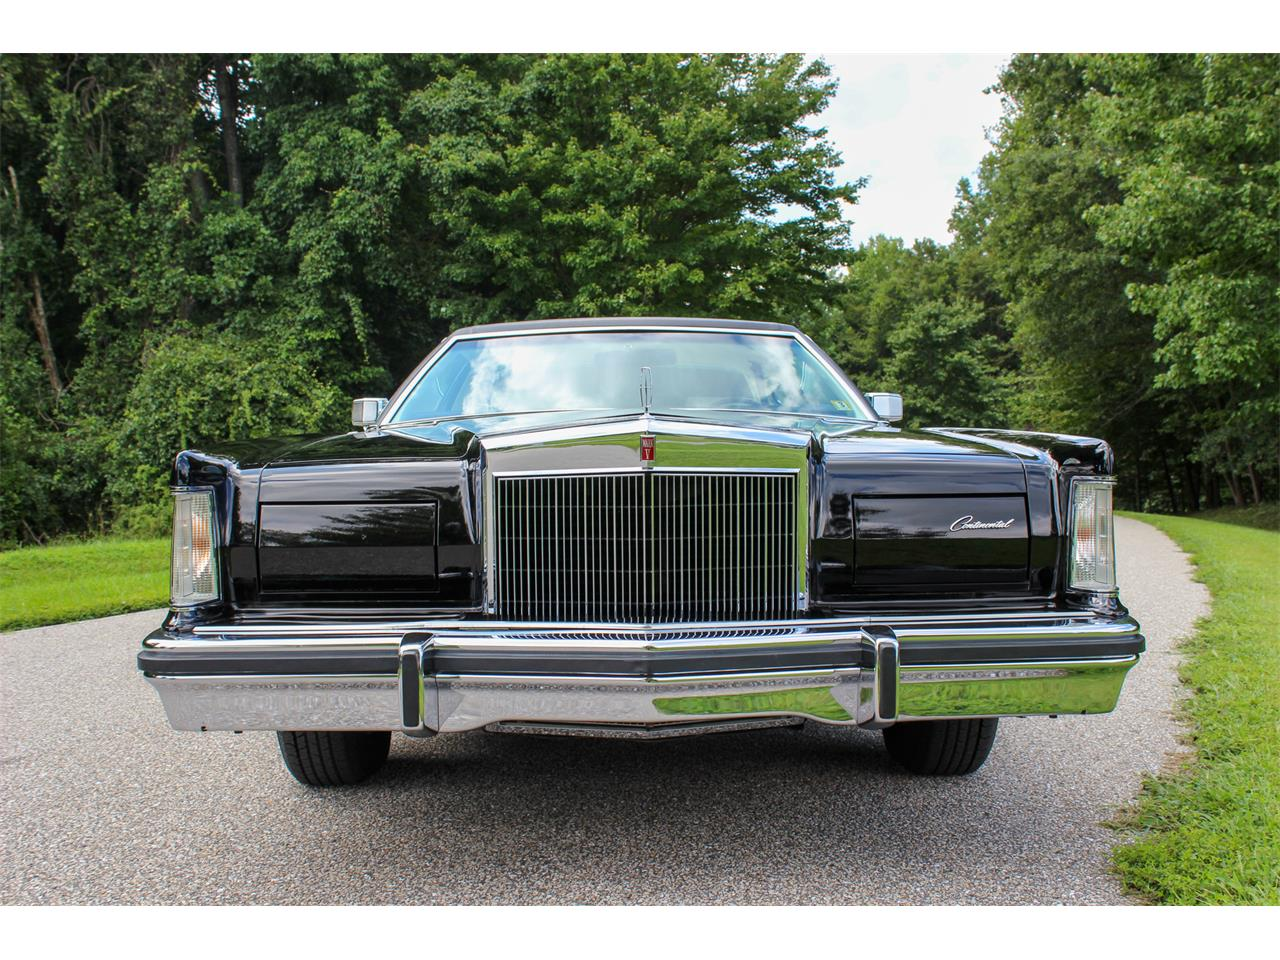 1977 Lincoln Continental Mark V (CC-1385138) for sale in Crofton, Maryland